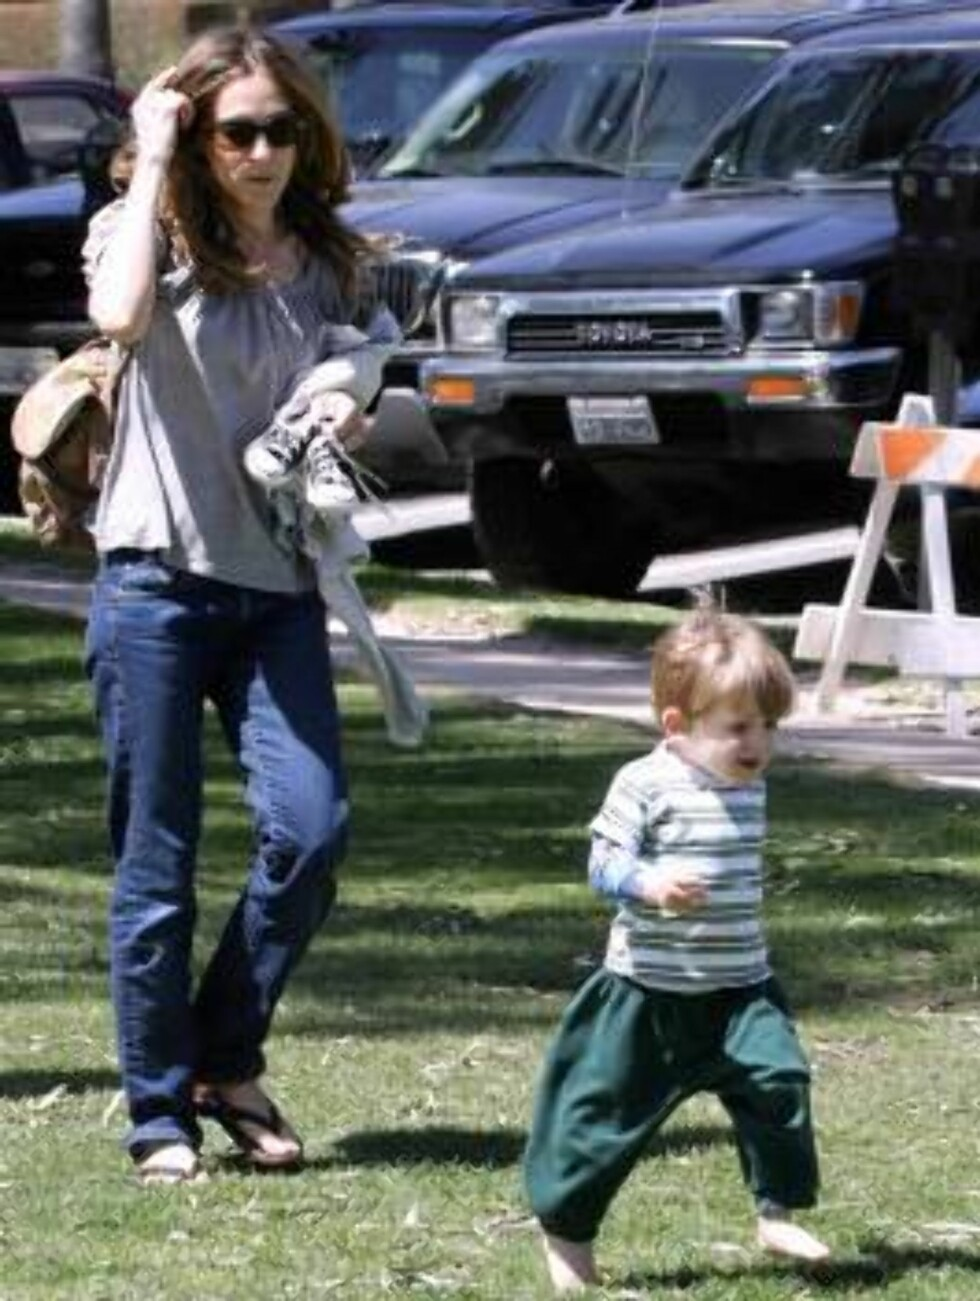 Code: X17XX8 - Madison, Santa Monica, USA, 16.04.2005: Sarah Jessica Parker playing with son James at a park in Santa Monica , California, climbing trees, running. All Over Press / X17 Agency / Madison      EXCLUSIVE  / ALL OVER PRESS Foto: All Over Press